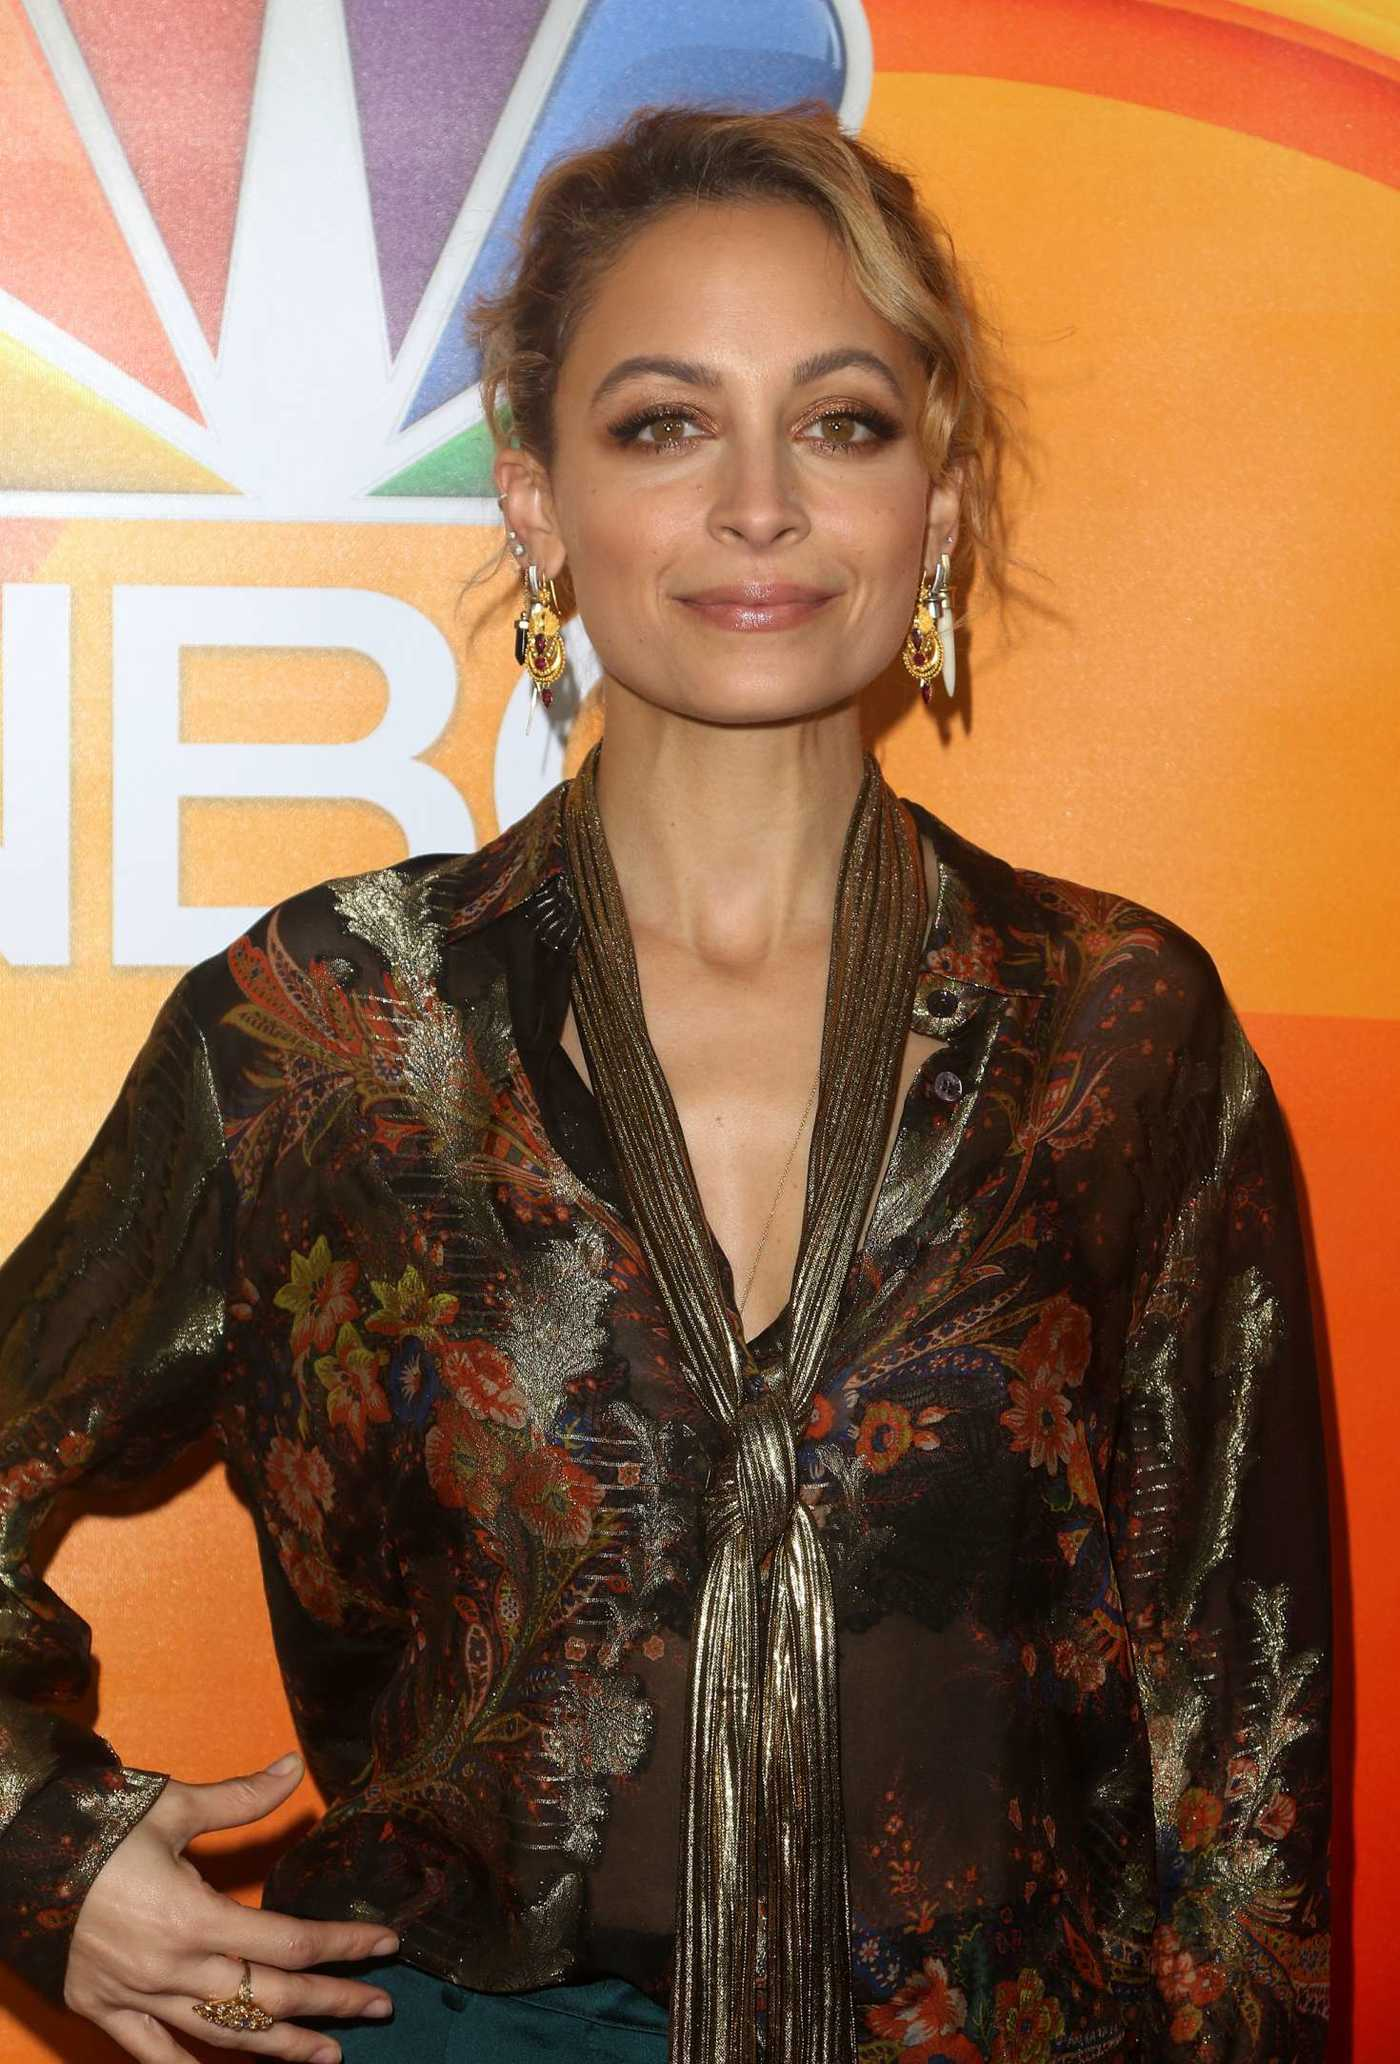 Nicole Richie at the 2017 NBCUniversal Winter Press Tour in Pasadena 01/18/2017